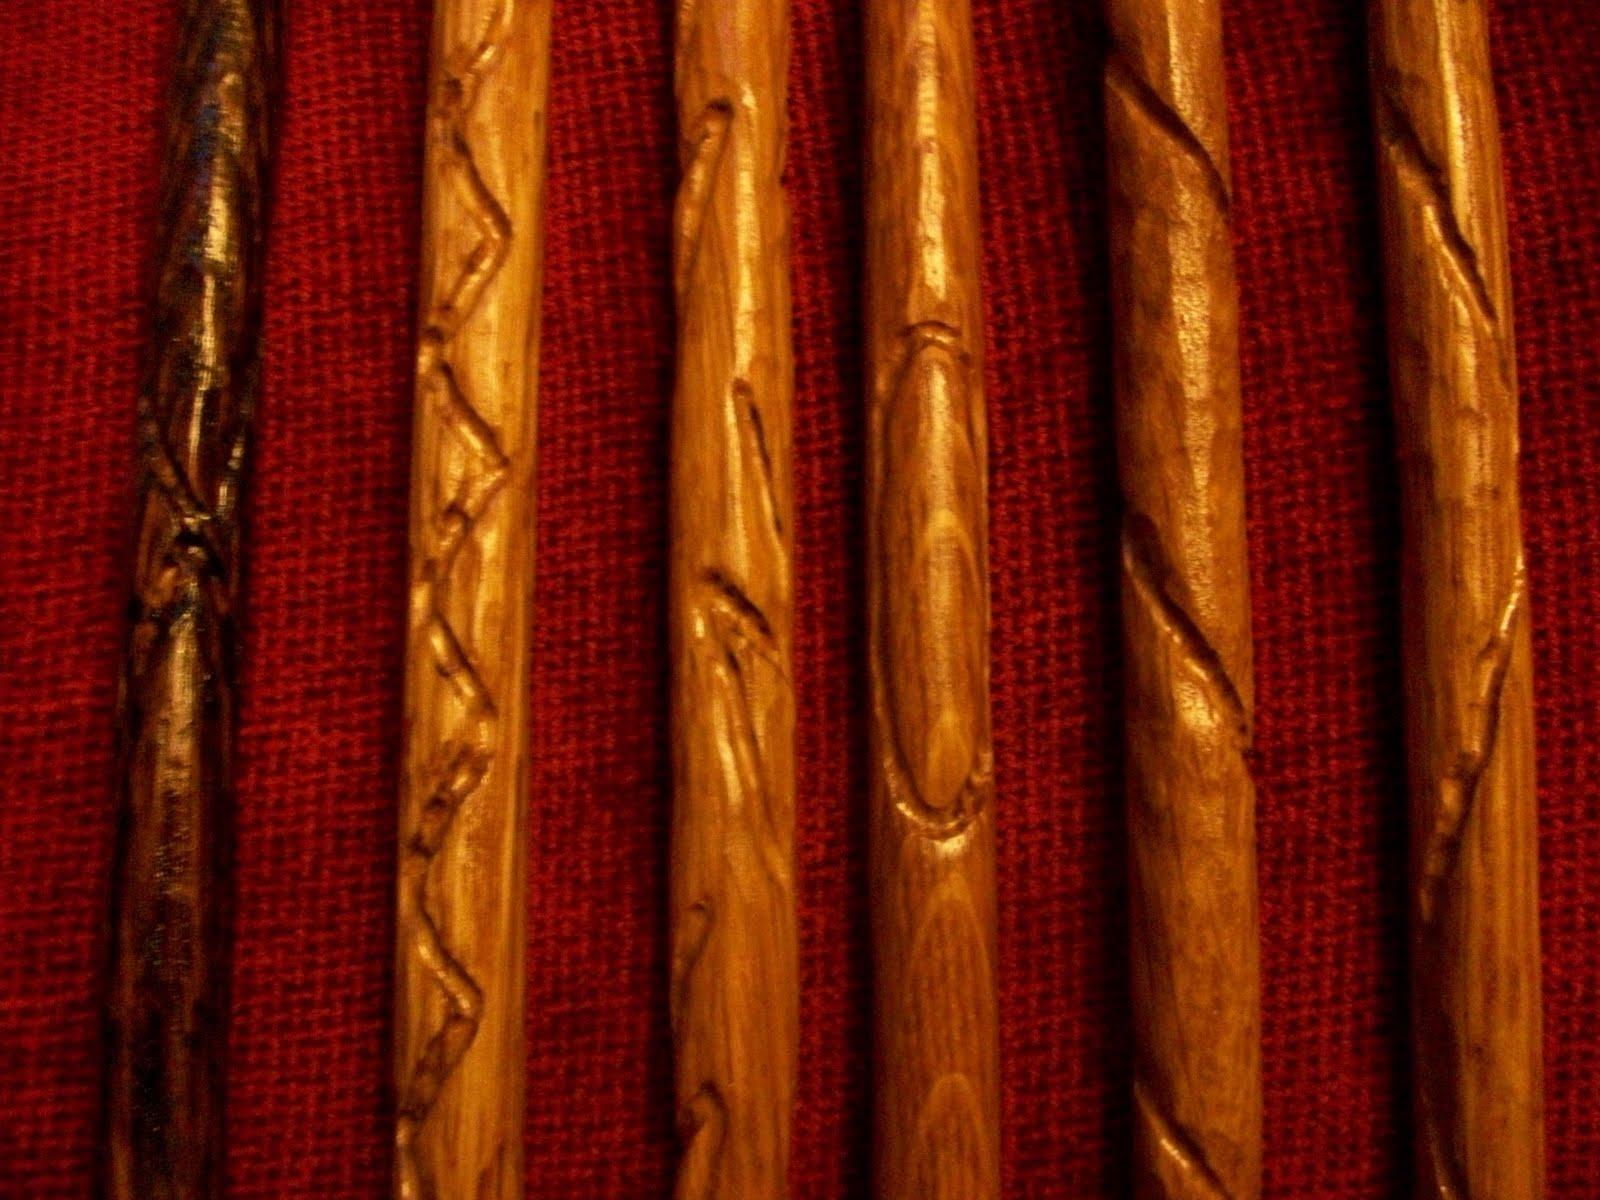 Wands and woodcraft wand designs for Wand designs